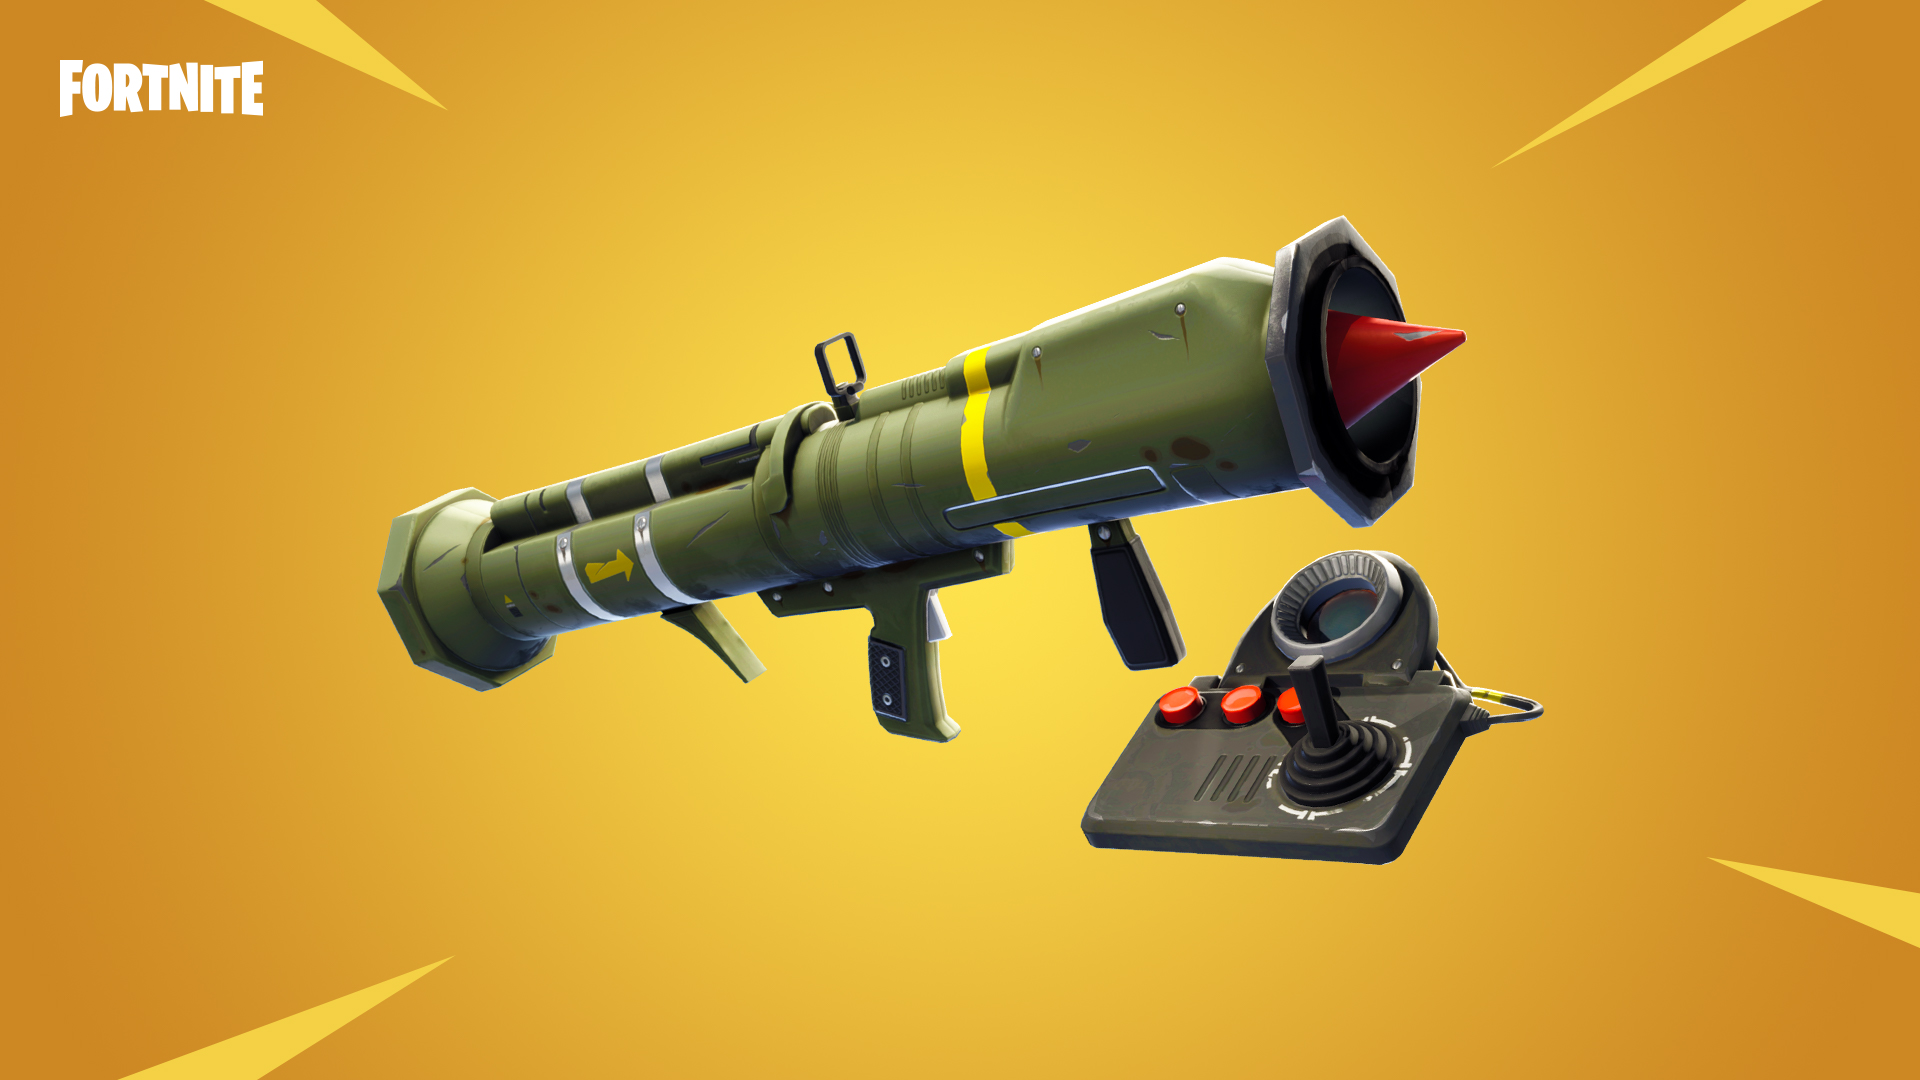 Fortnite's Guided Missile & Jetpack Return In v5.10